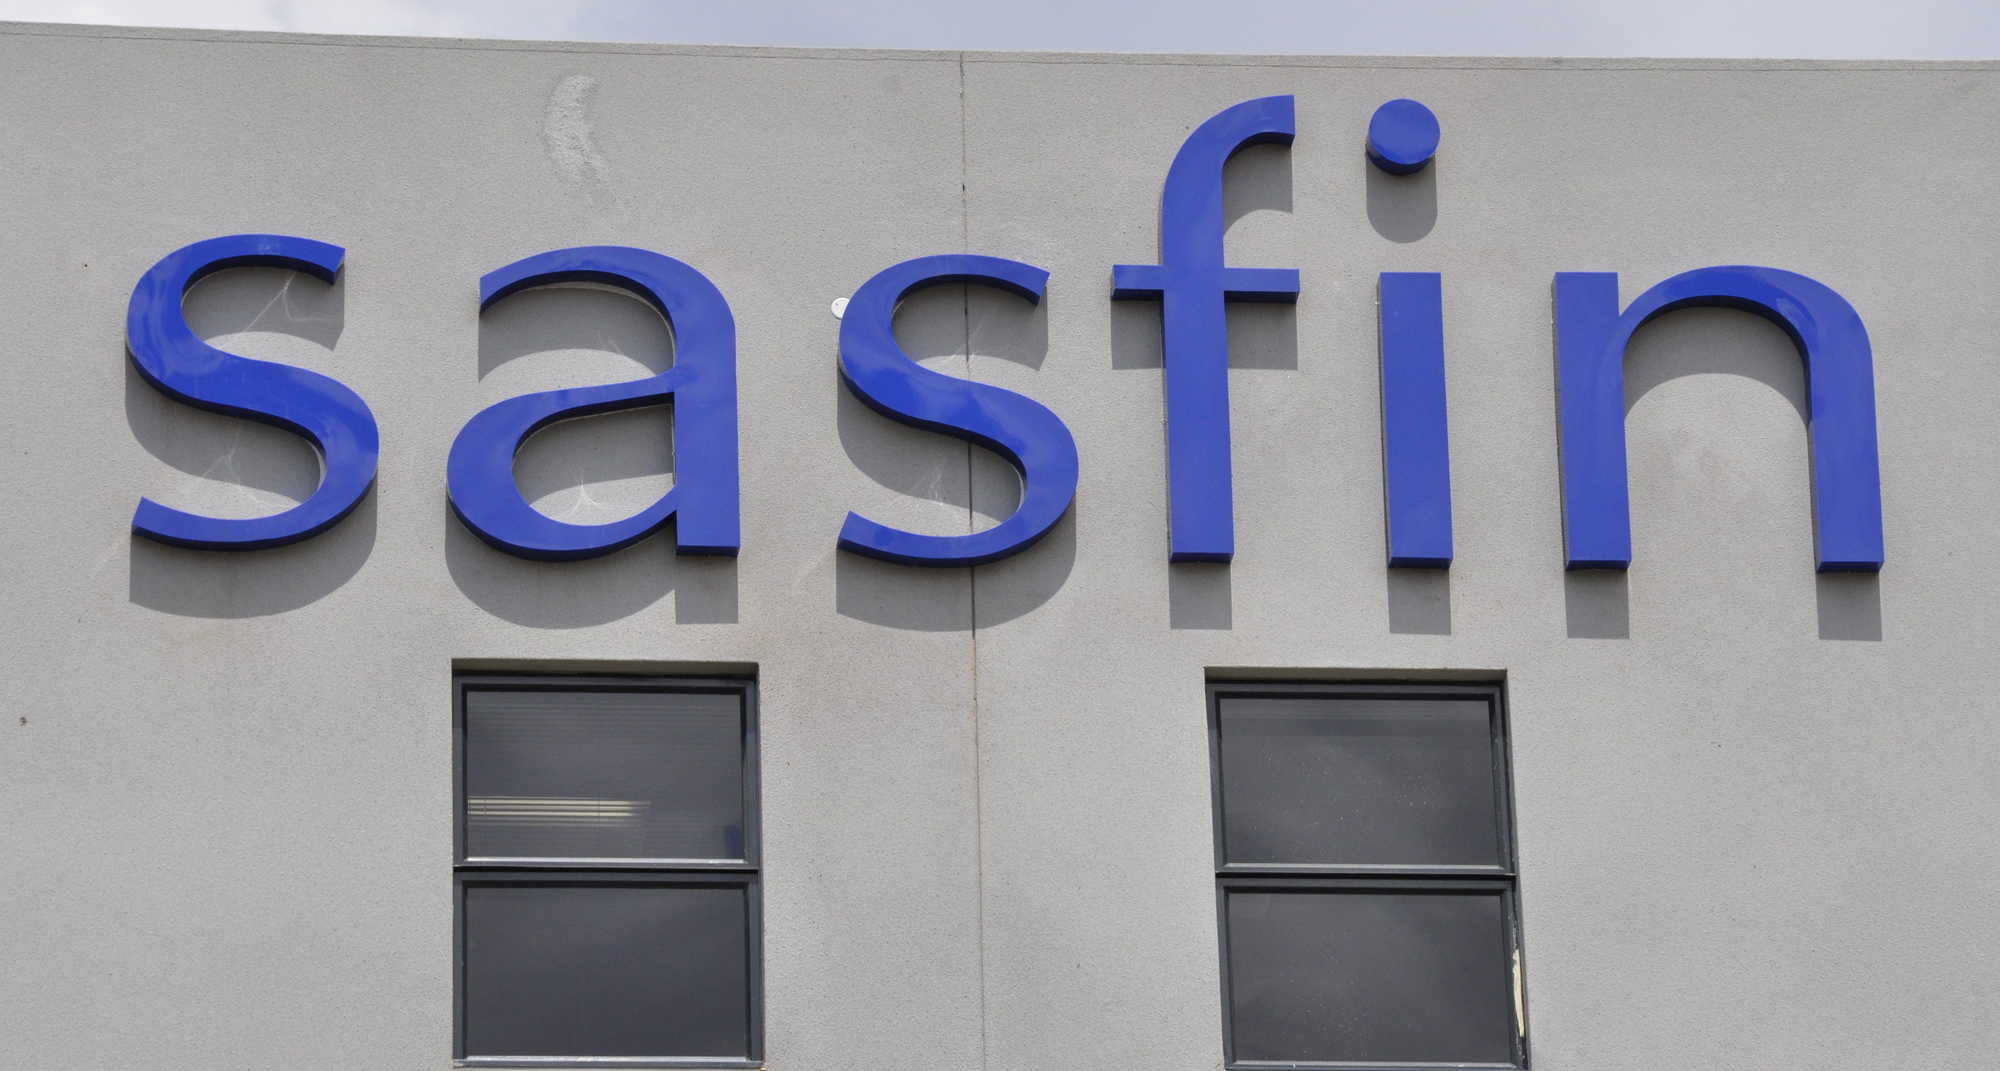 Investing in the future does not come cheap, but Sasfin is confident its three-pronged strategy will pay off